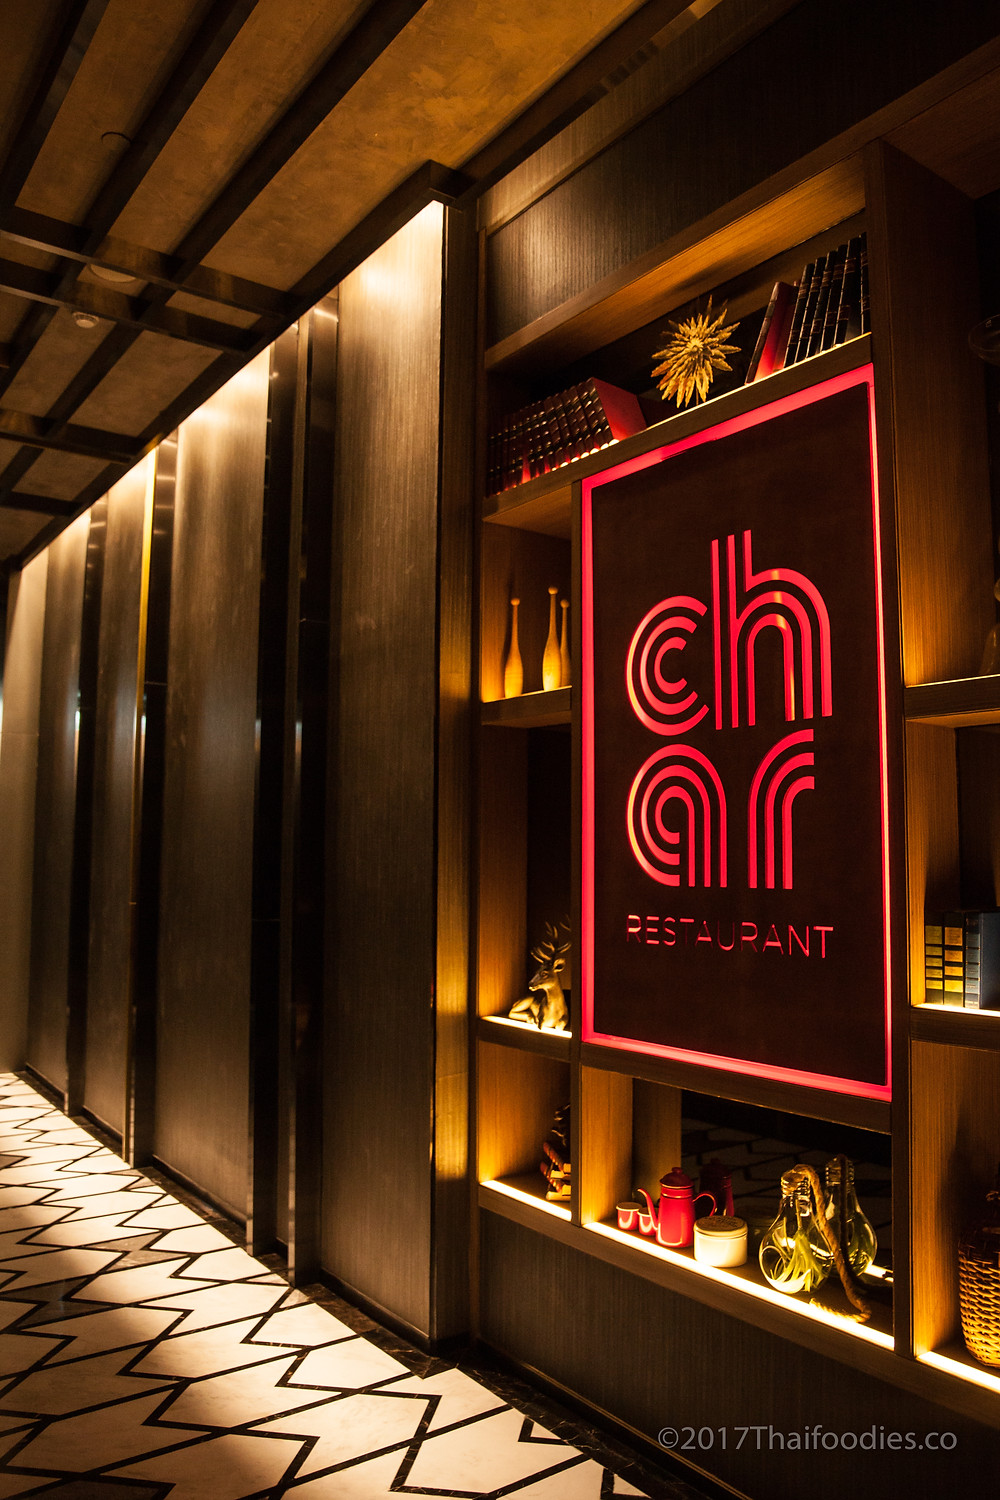 Char Restaurant Review | thaifoodies.co